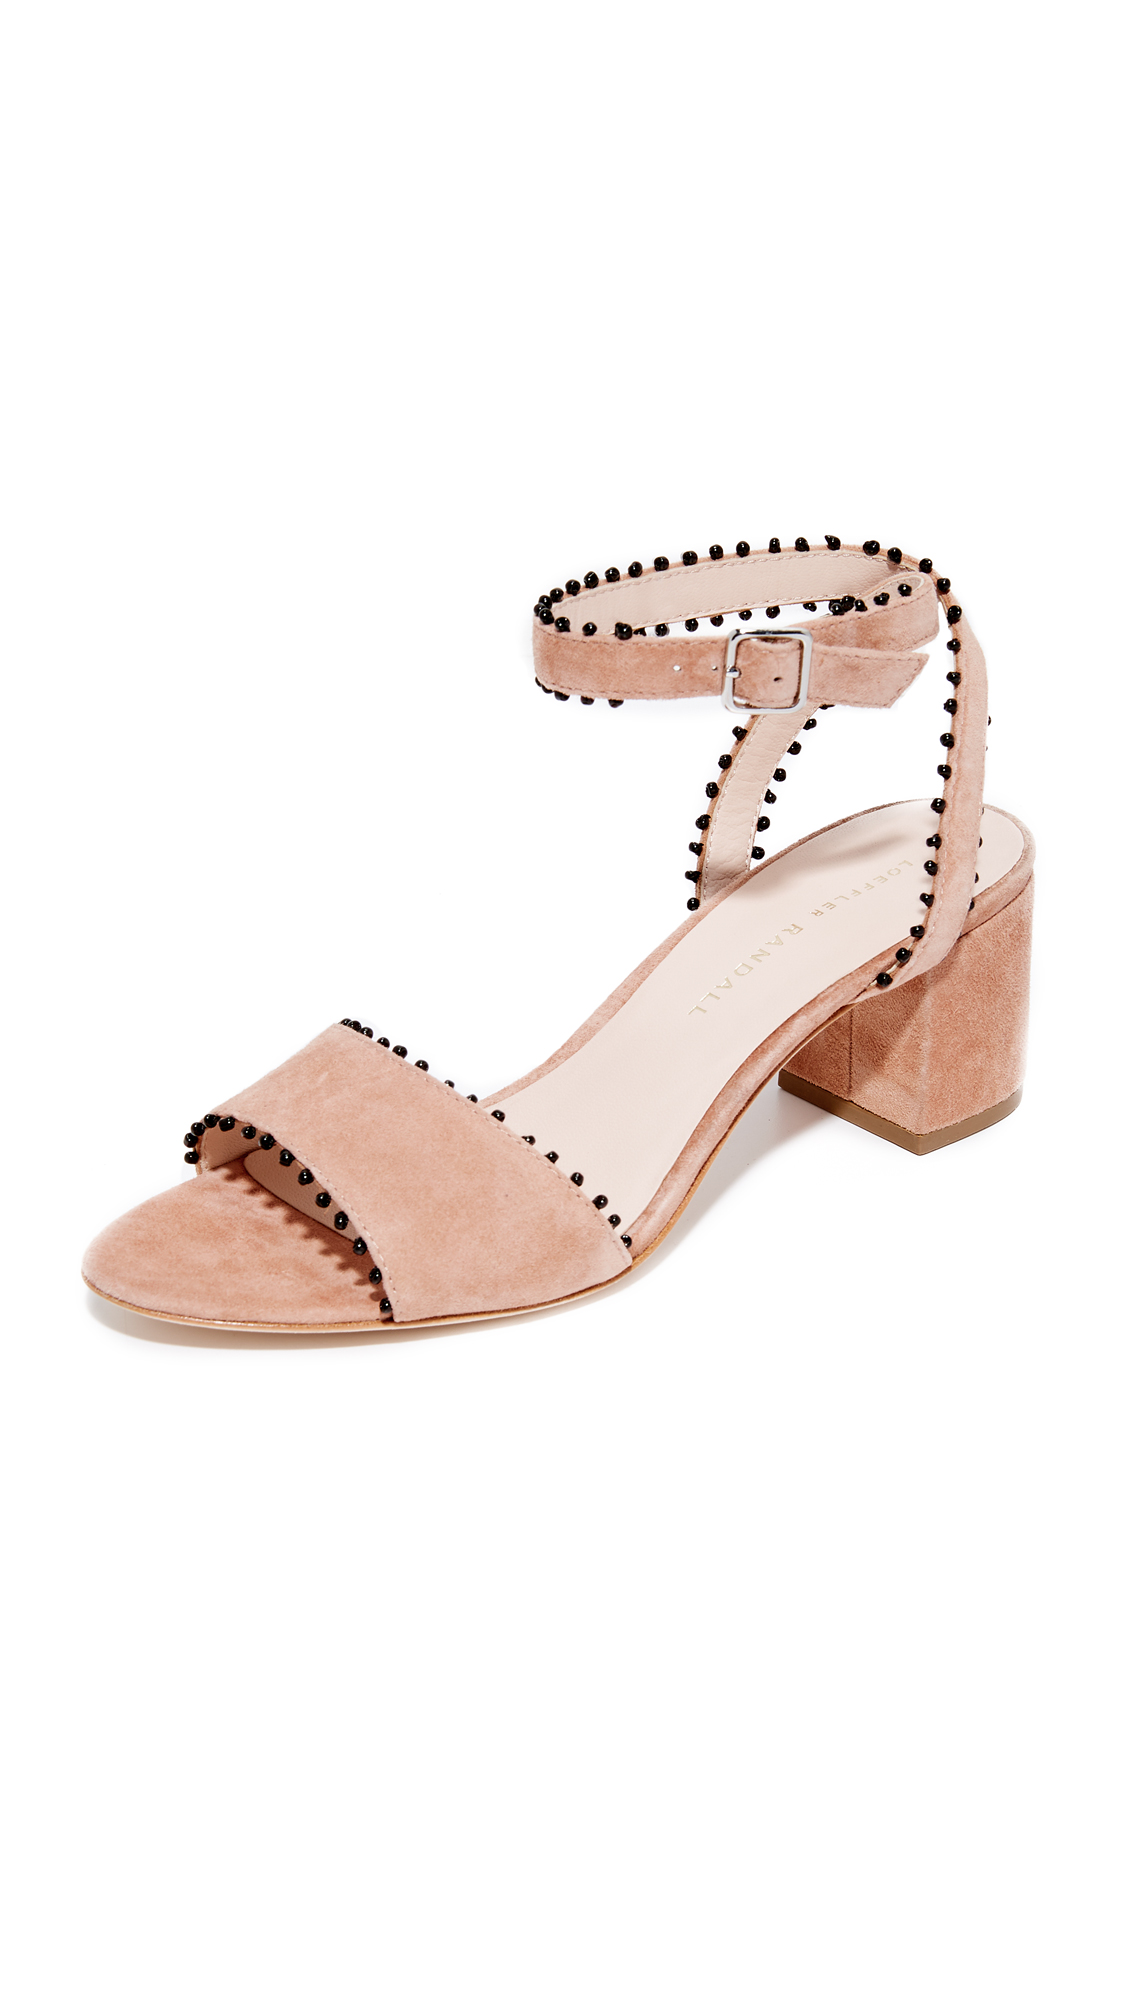 Loeffler Randall Eryn City Sandals - Deep Blush/Black